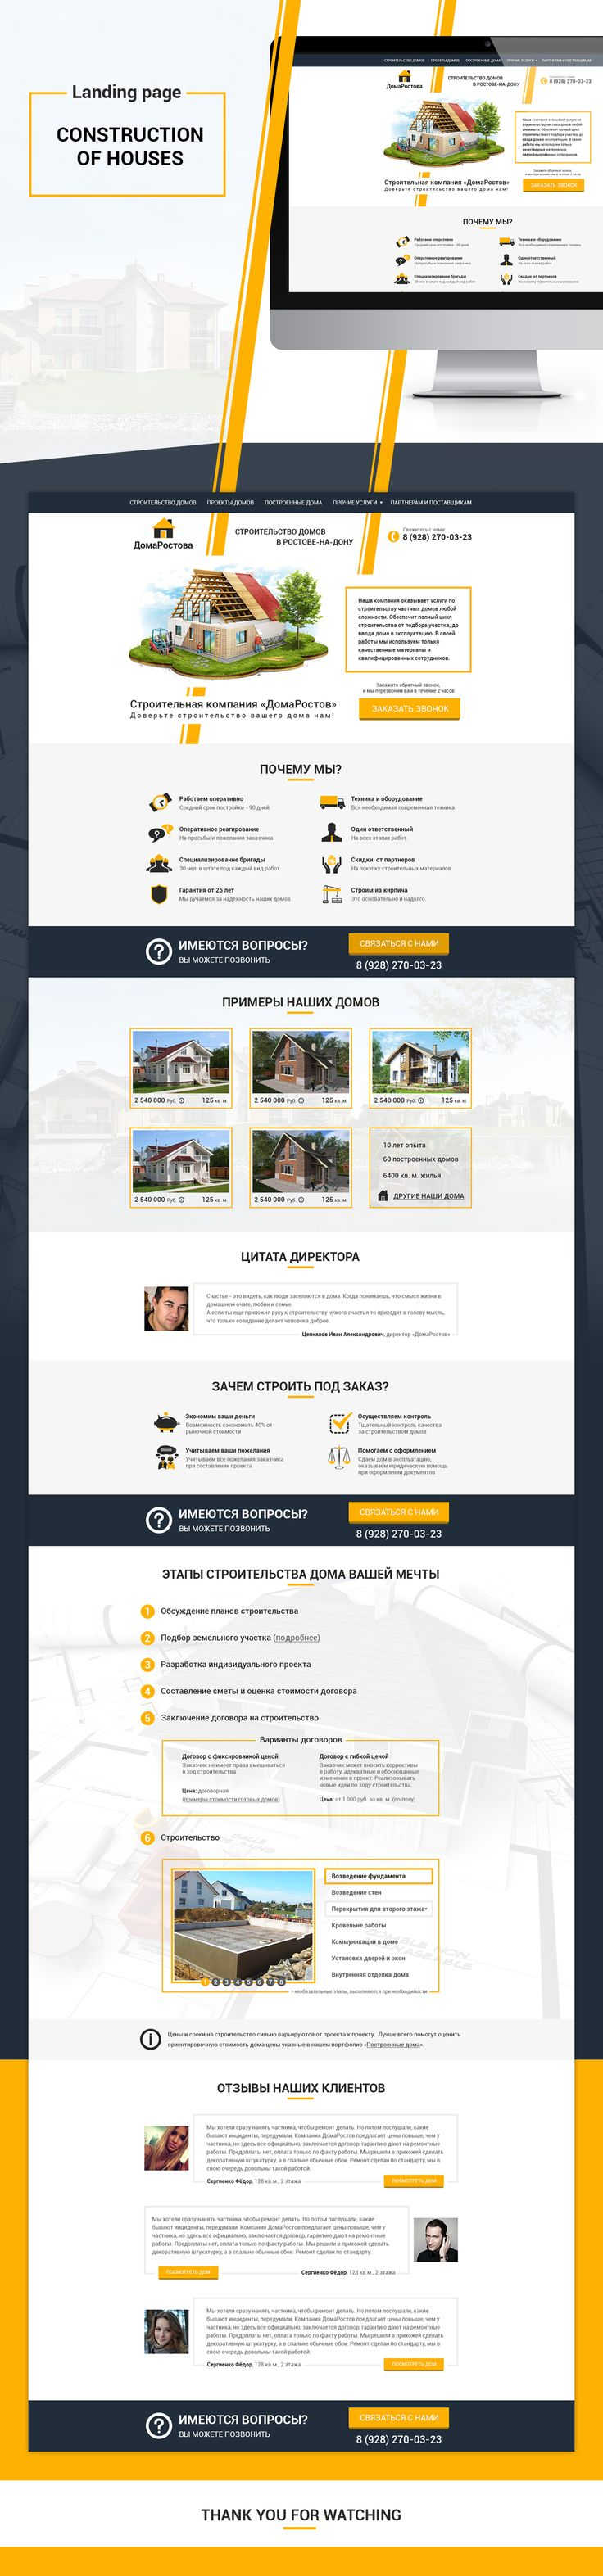 """Landing page """"Construction of houses"""" on Behance"""